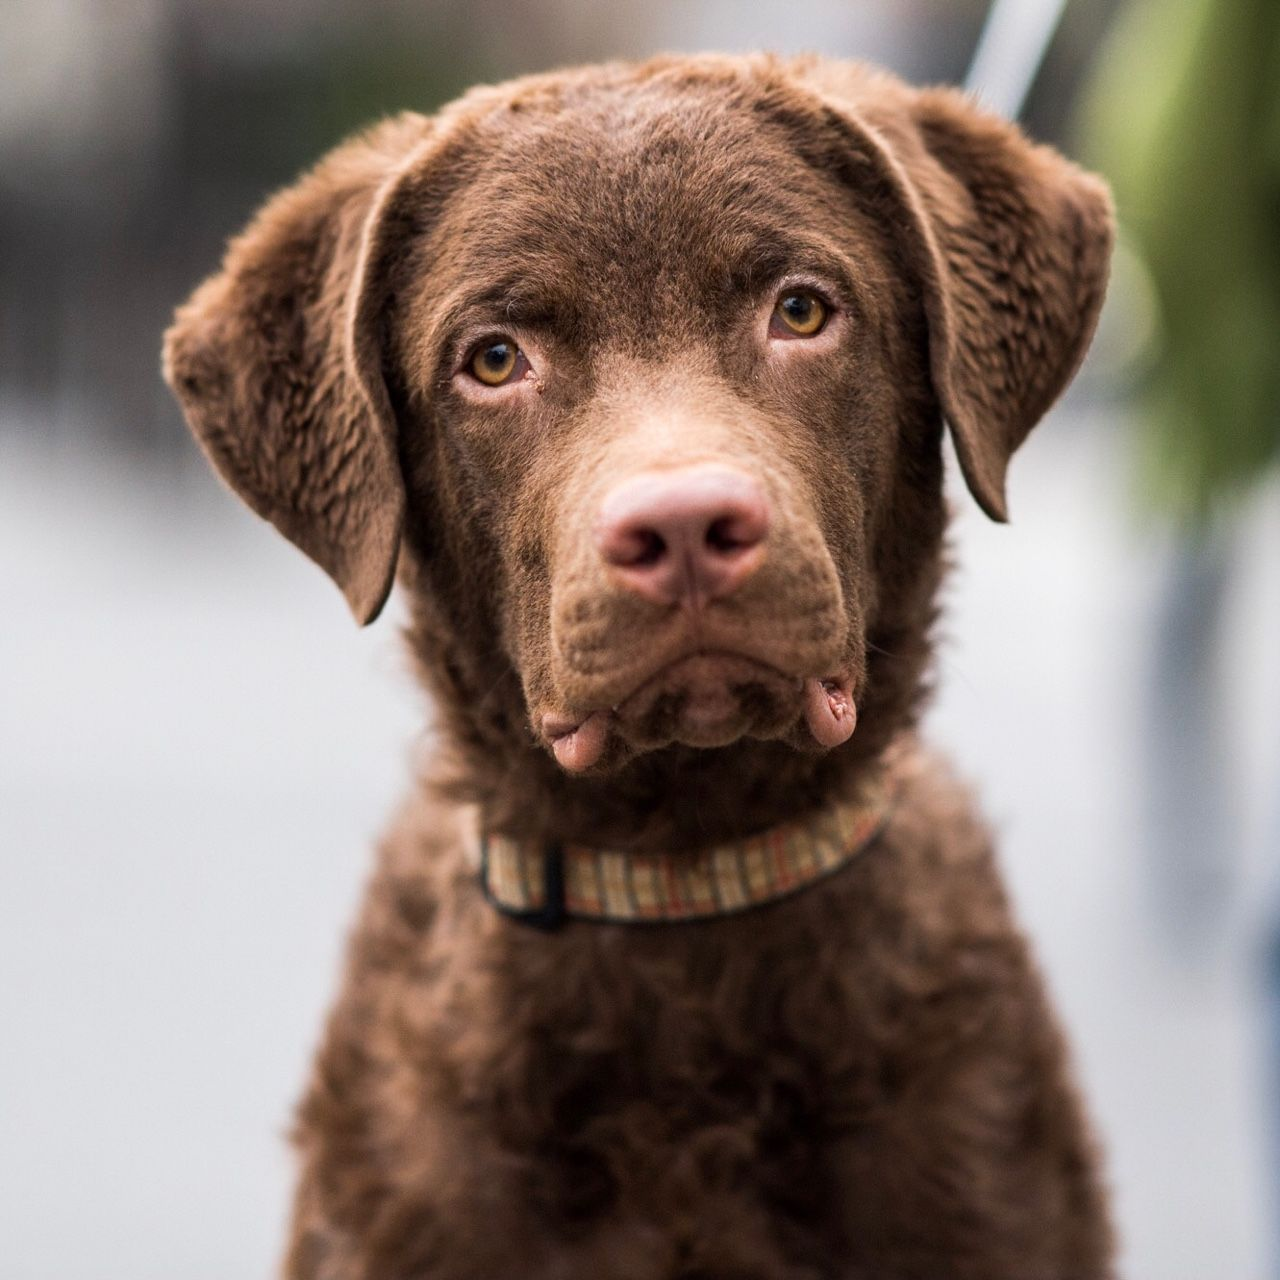 Raymond Chesapeake Bay Retriever 9 M X2f O Union Square New York Ny He S Calm For A Chessie But They Can Be Difficult To Trai With Images Chesapeake Bay Retriever